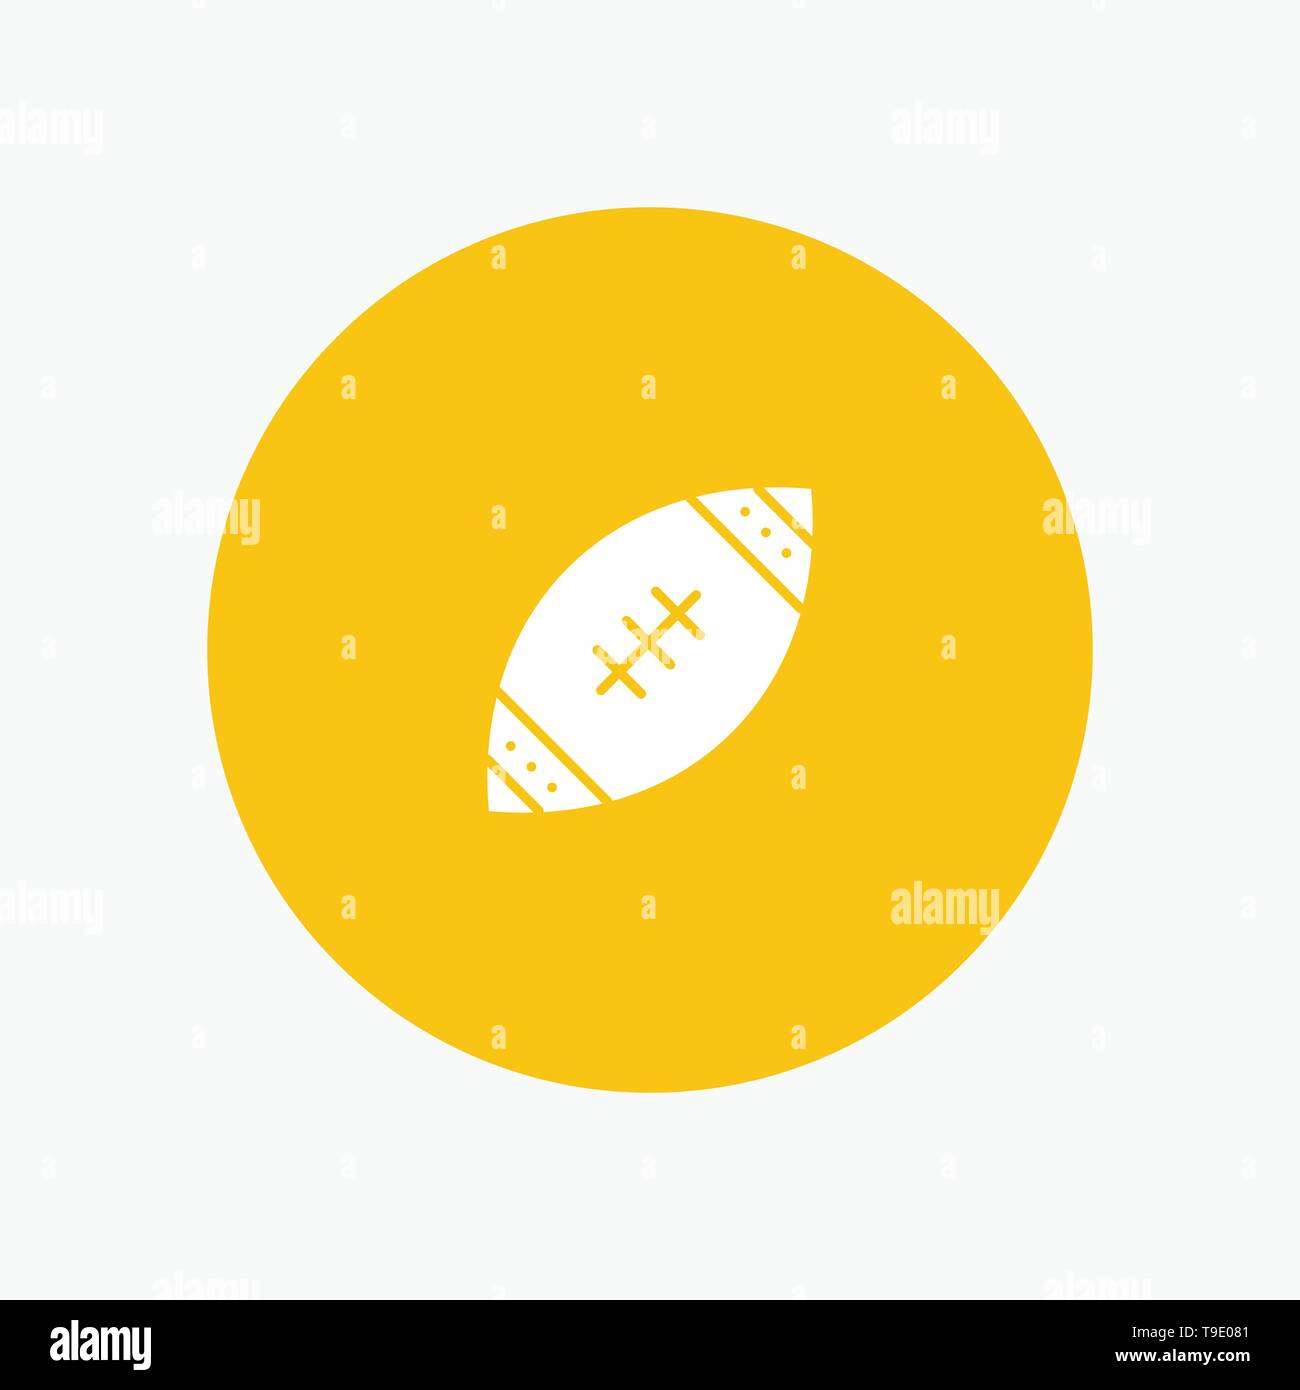 American, Ball, Football, Nfl, Rugby - Stock Image